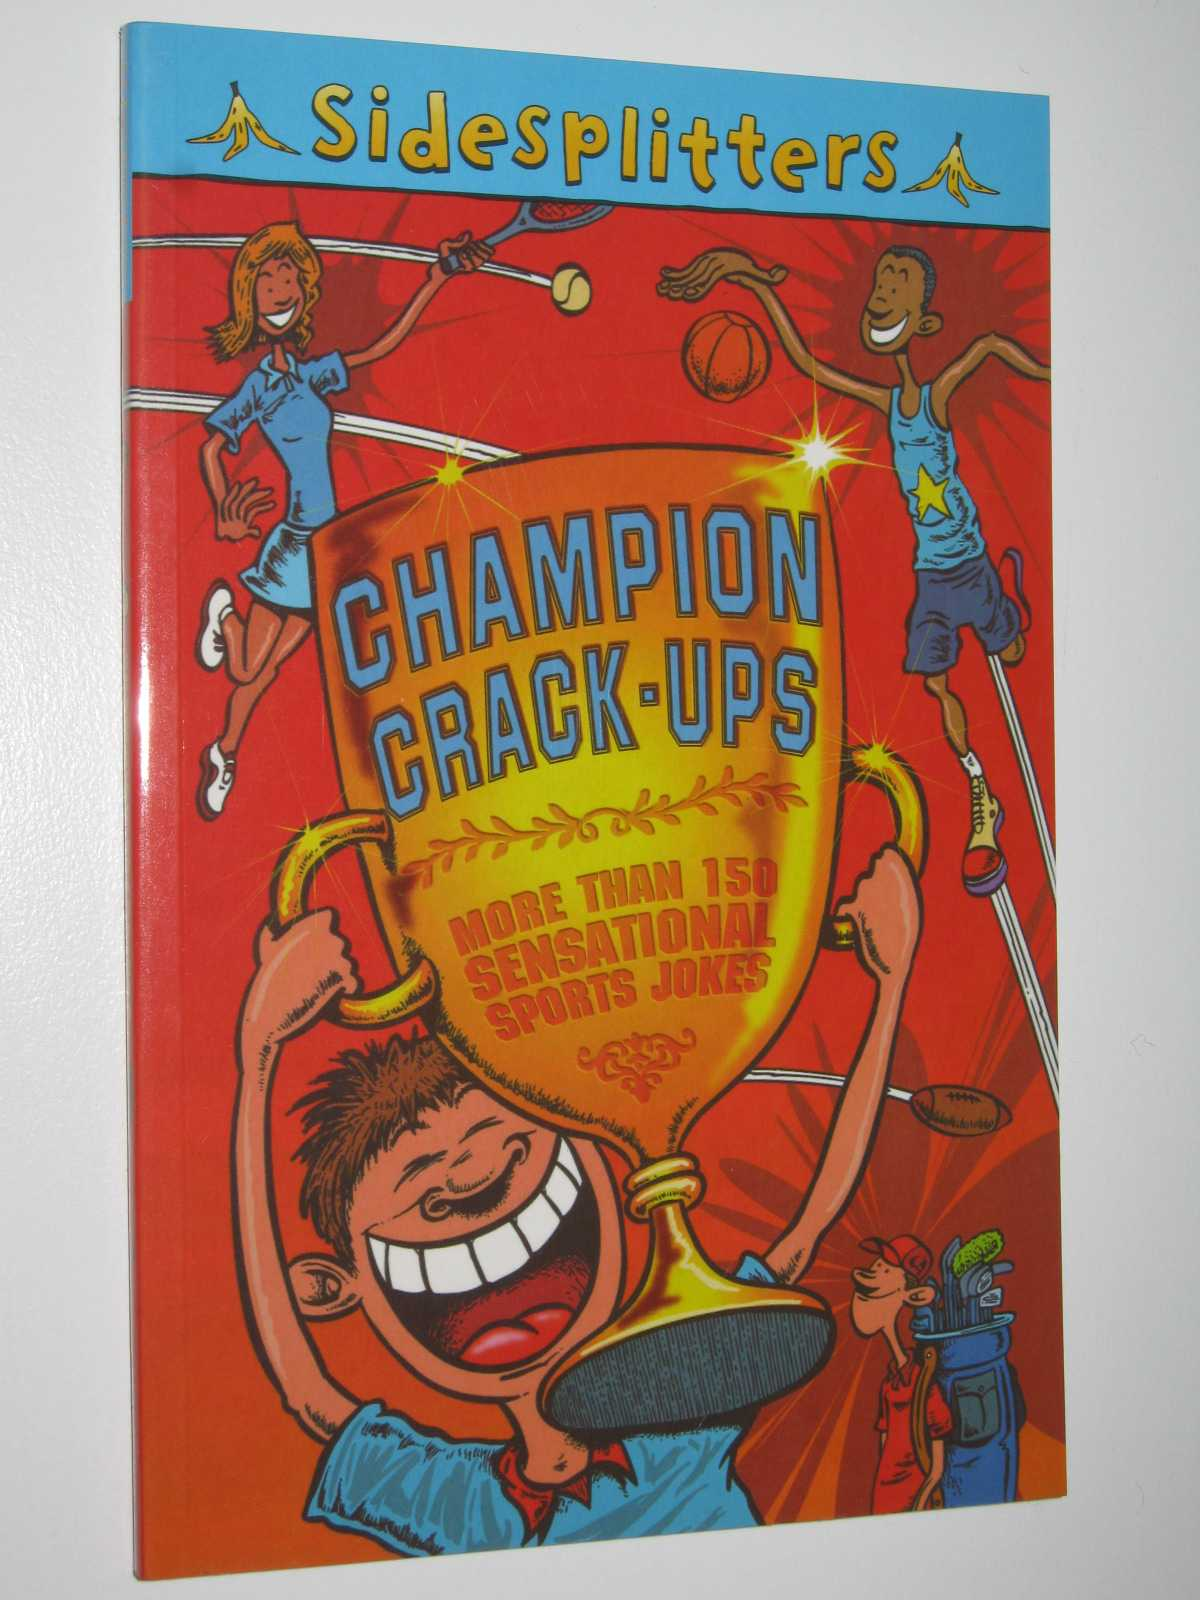 Image for Champion Crack-ups: More Than 150 Sensational Sports Jokes - Sidesplitters Series